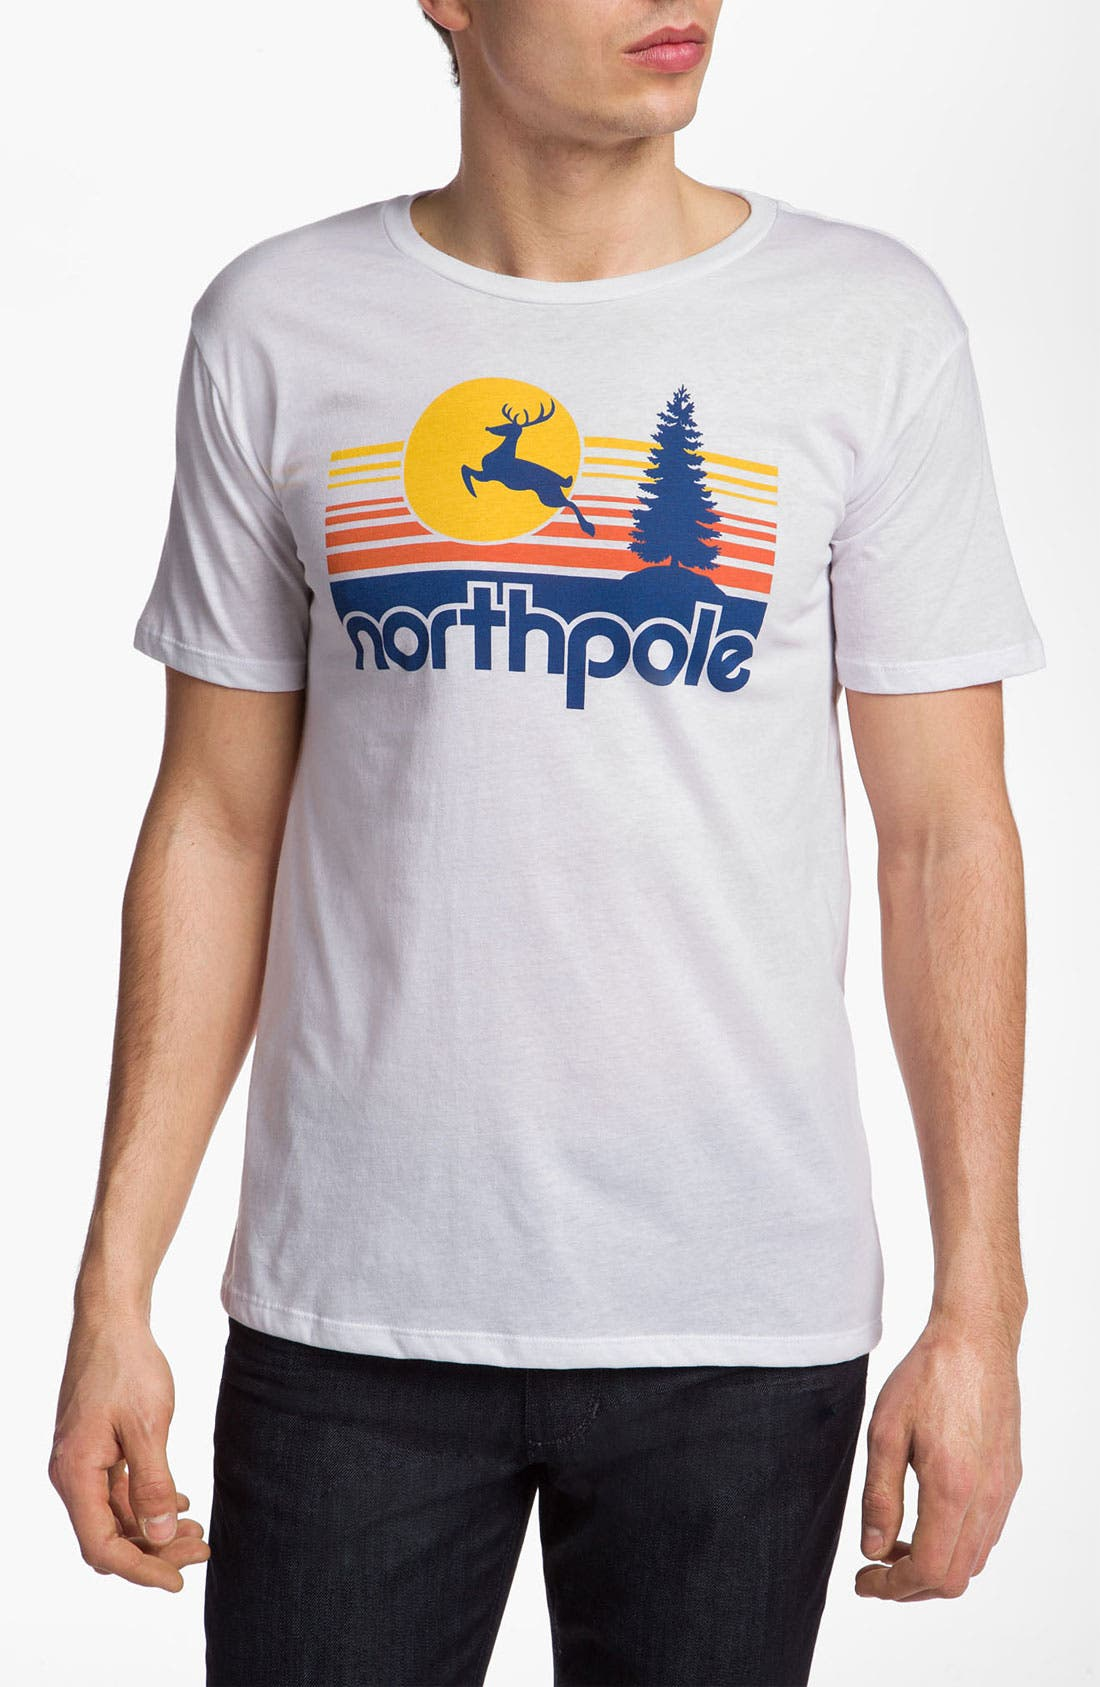 Alternate Image 1 Selected - Headline Shirts 'North Pole Vacation' T-Shirt